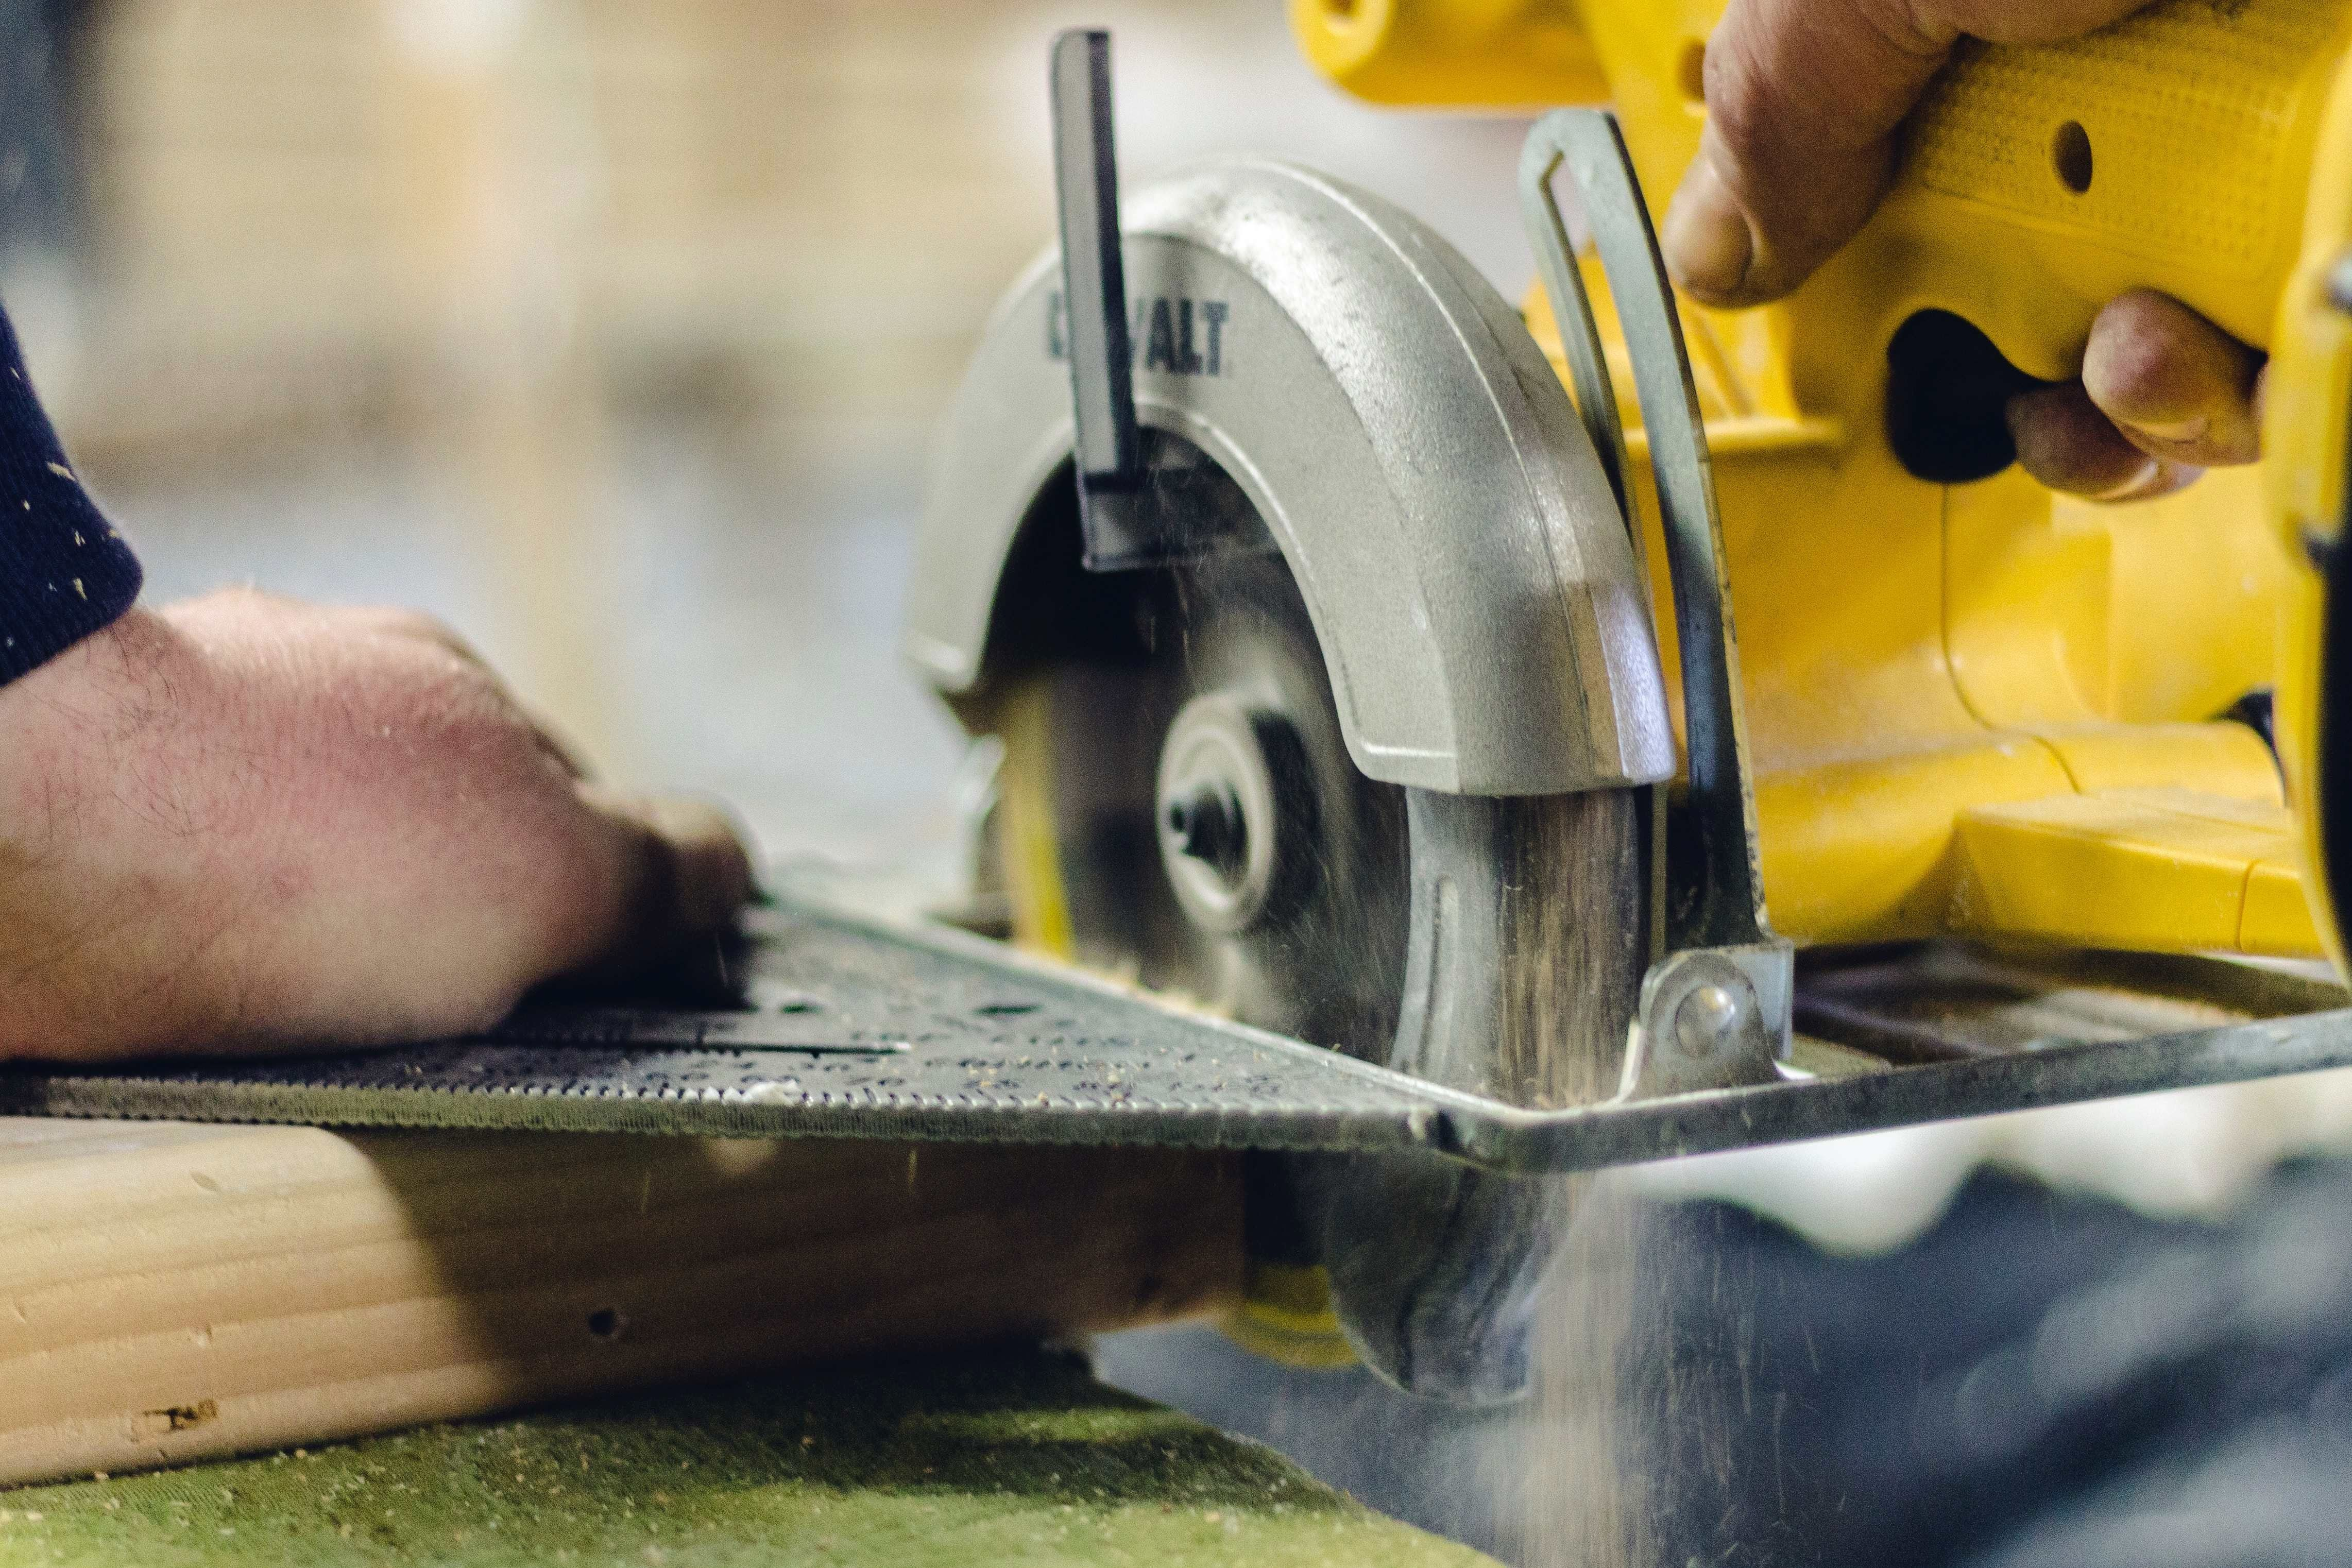 Jamey oneil on twitter in 2020 used woodworking tools